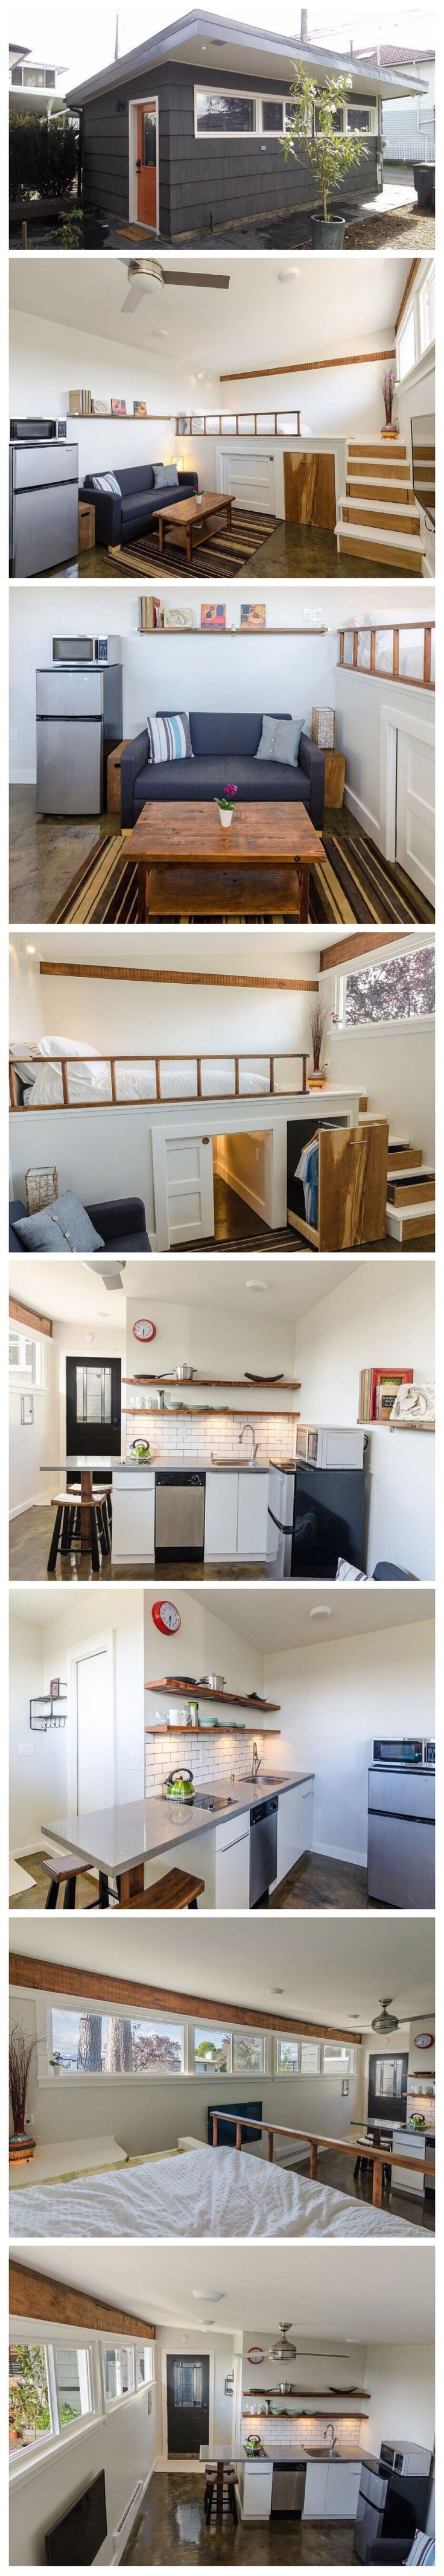 More kitchen, loft for office and extend width - connect to bedroom pods